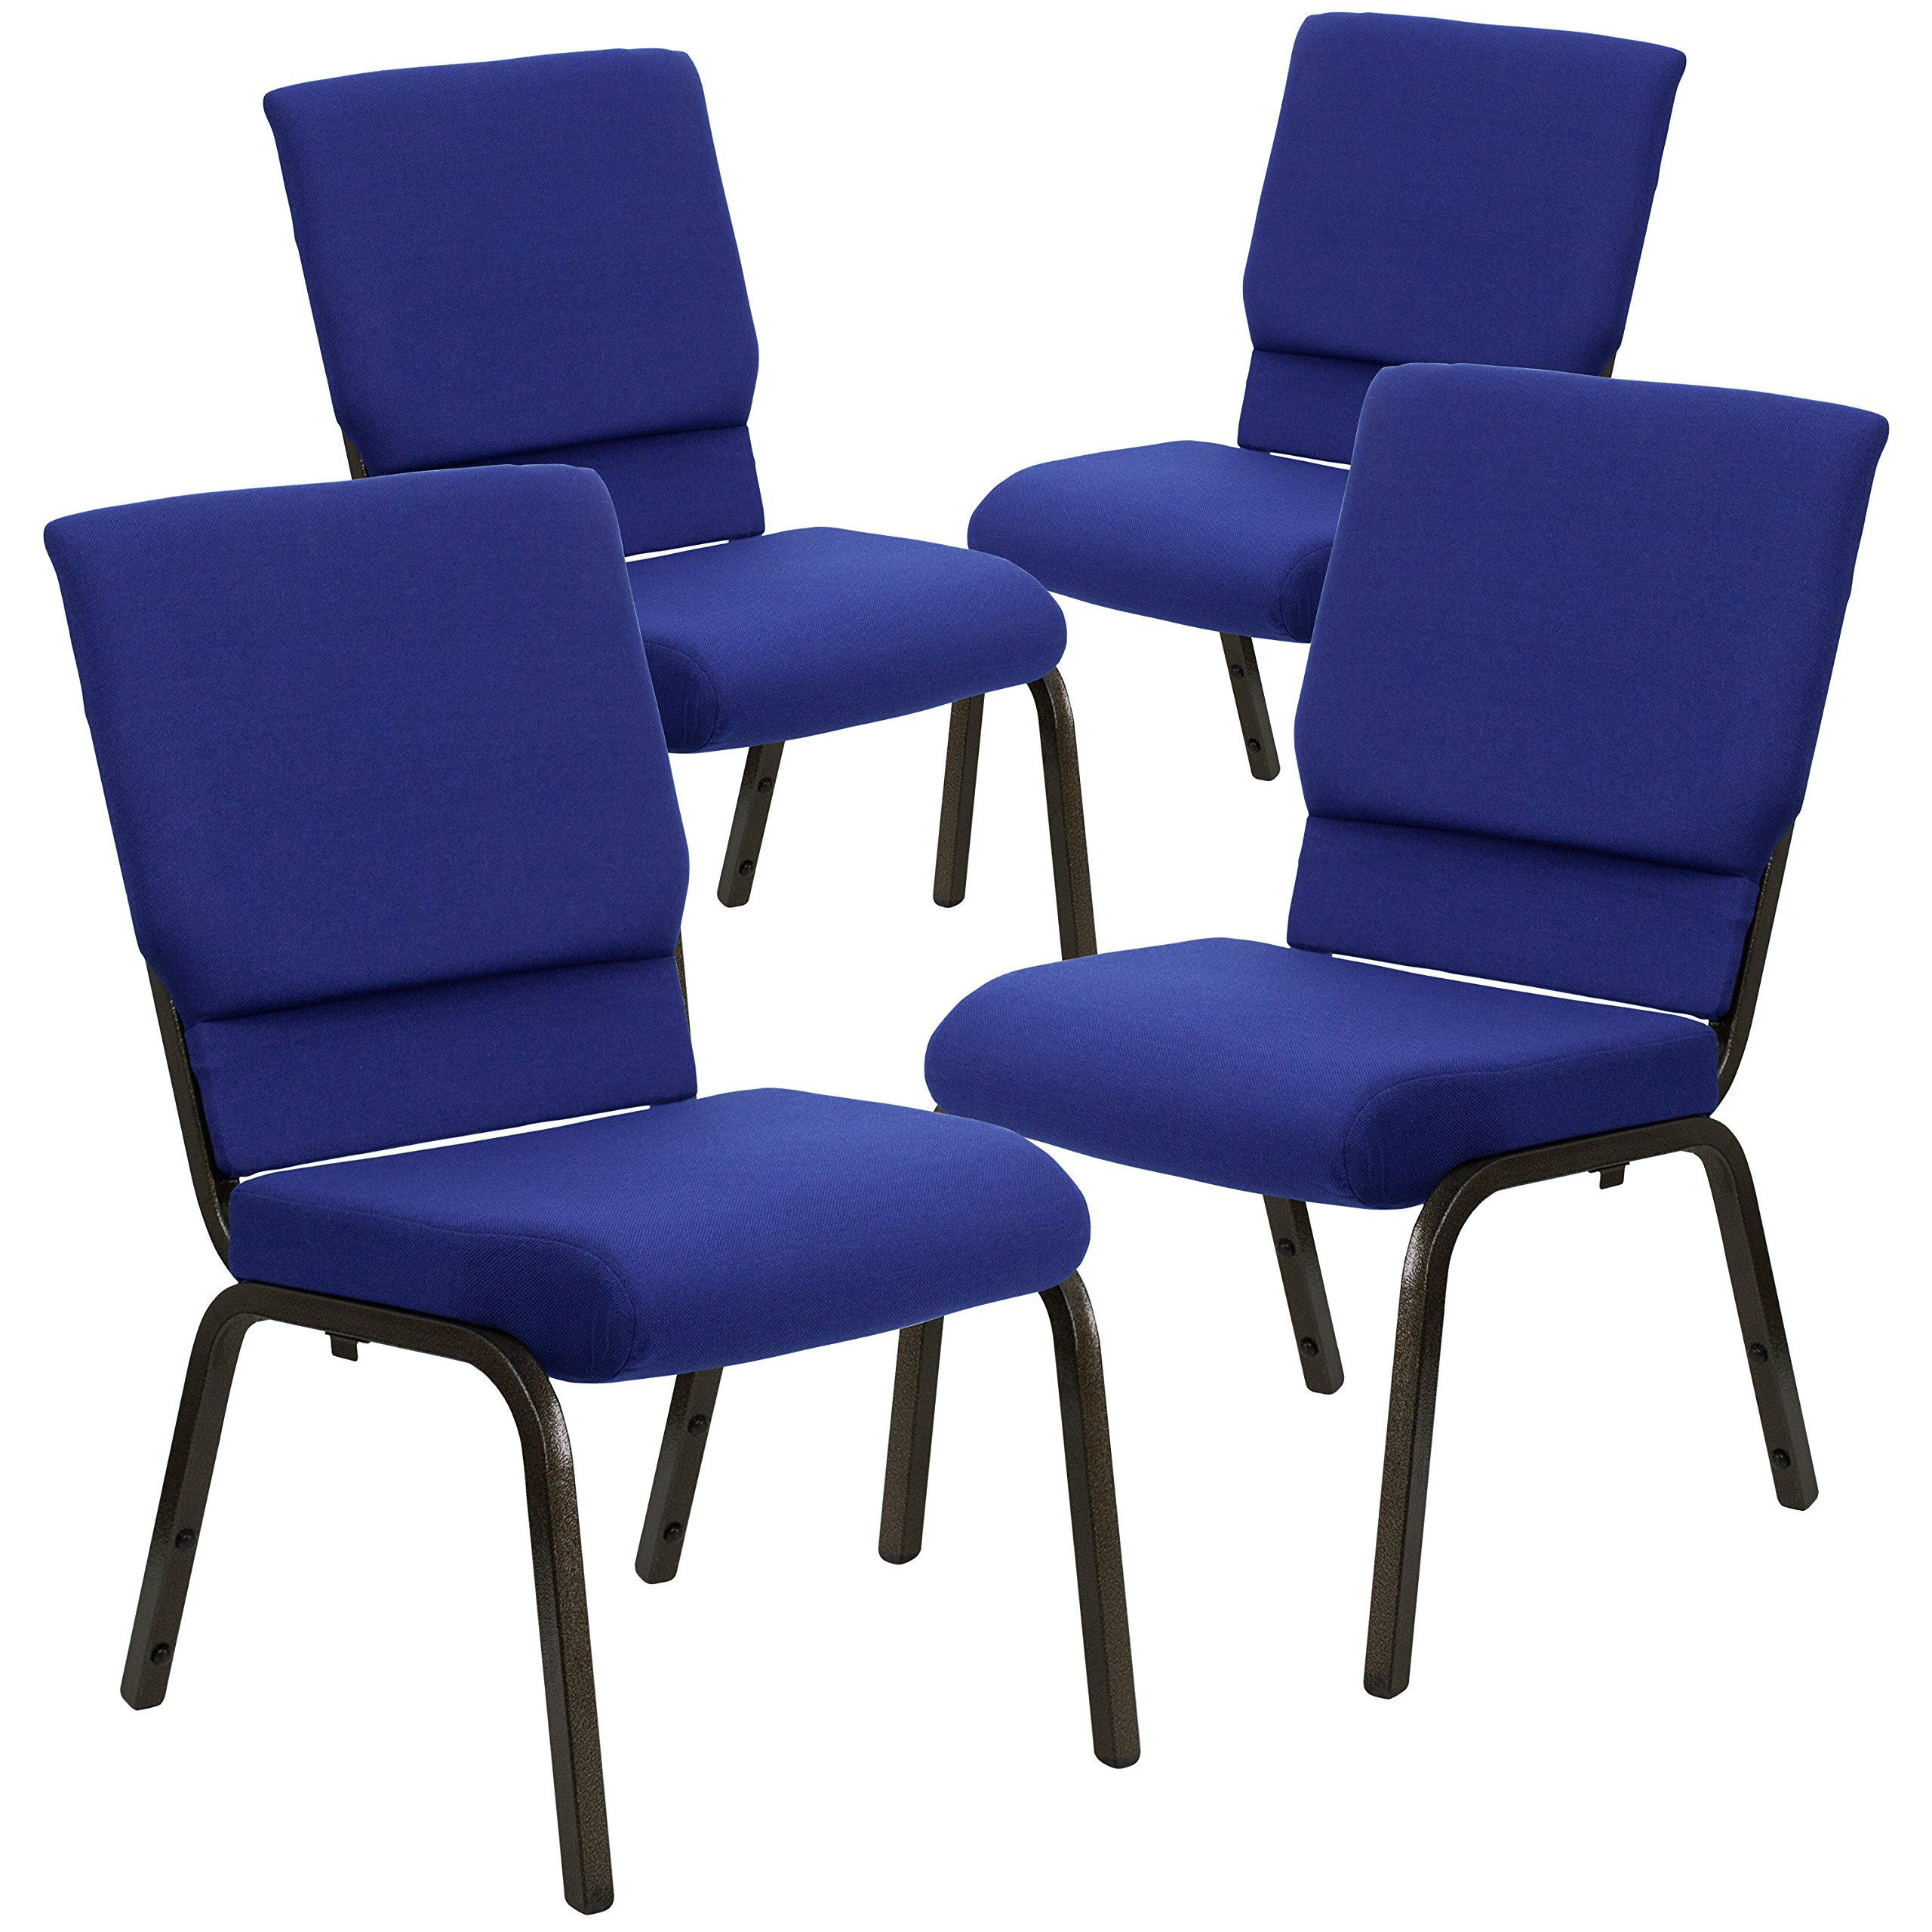 Flash Furniture 4 Pk. HERCULES Series 18.5''W Stacking Church Chair in Navy Blue Fabric - Gold Vein Frame by Flash Furniture